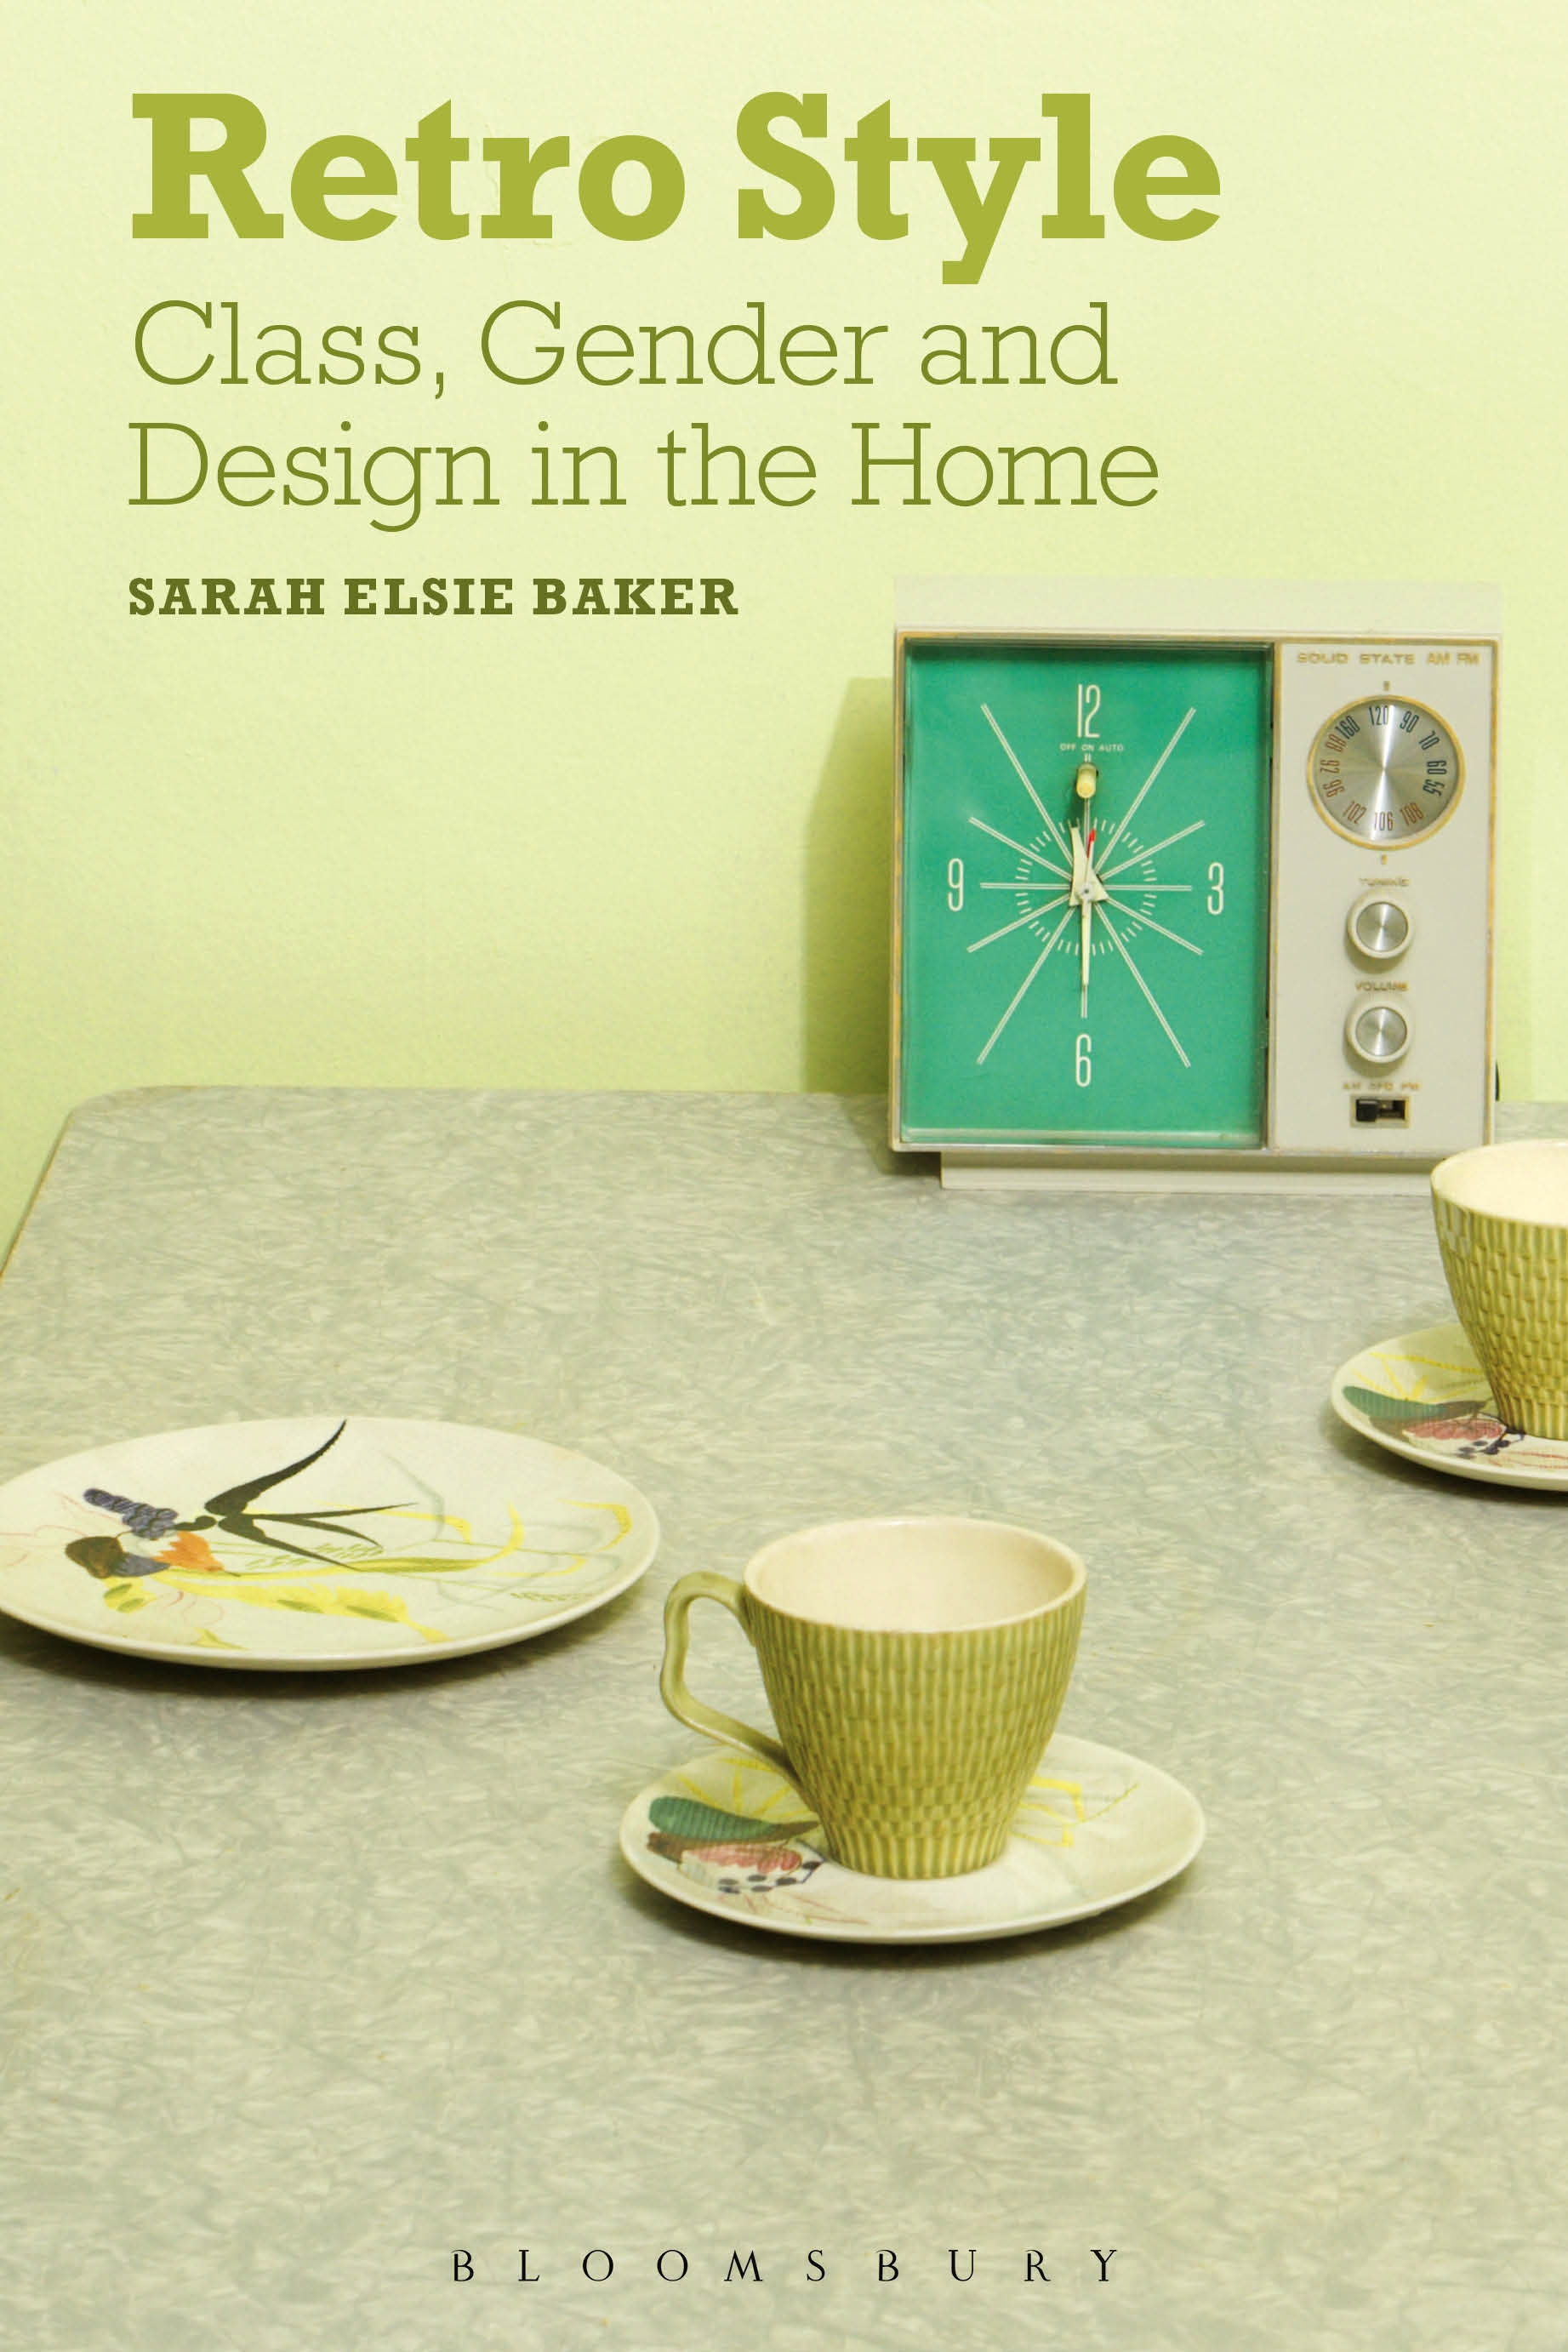 Retro Style Class, Gender and Design in the Home